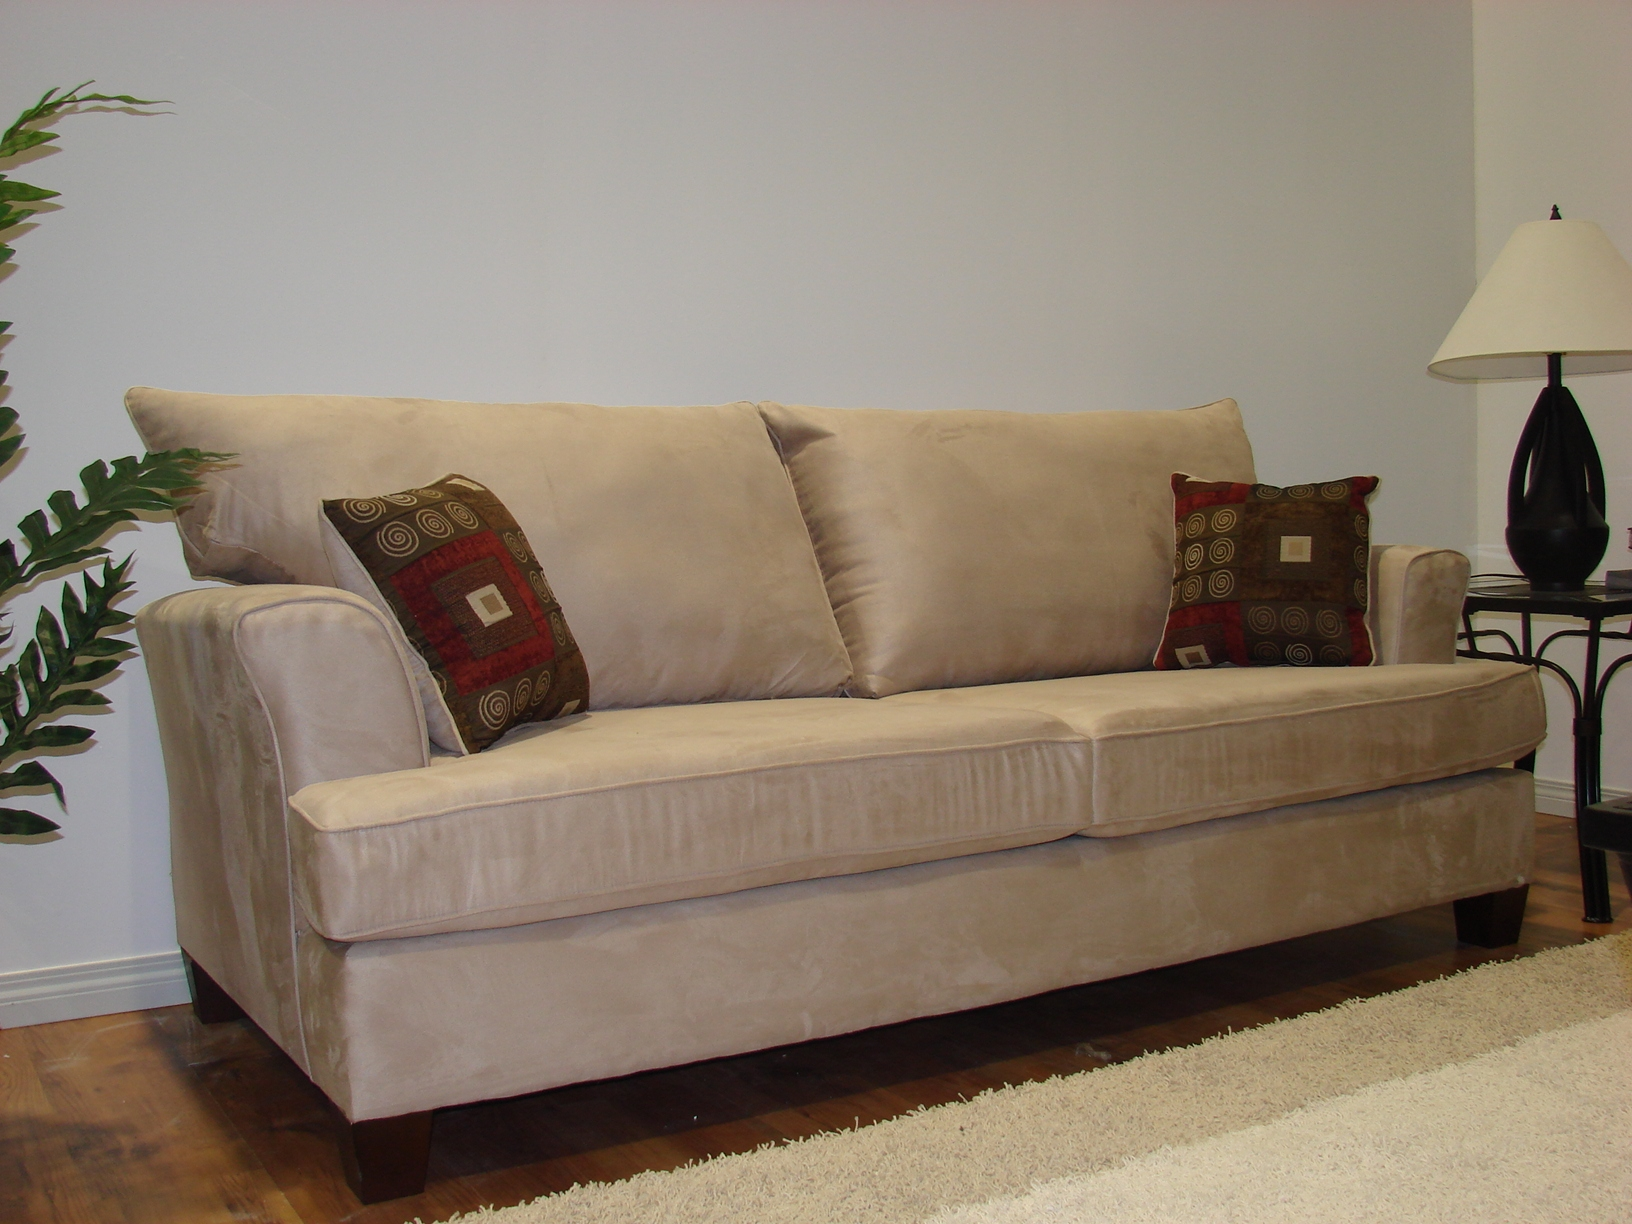 Featured Image of Cream Colored Sofas